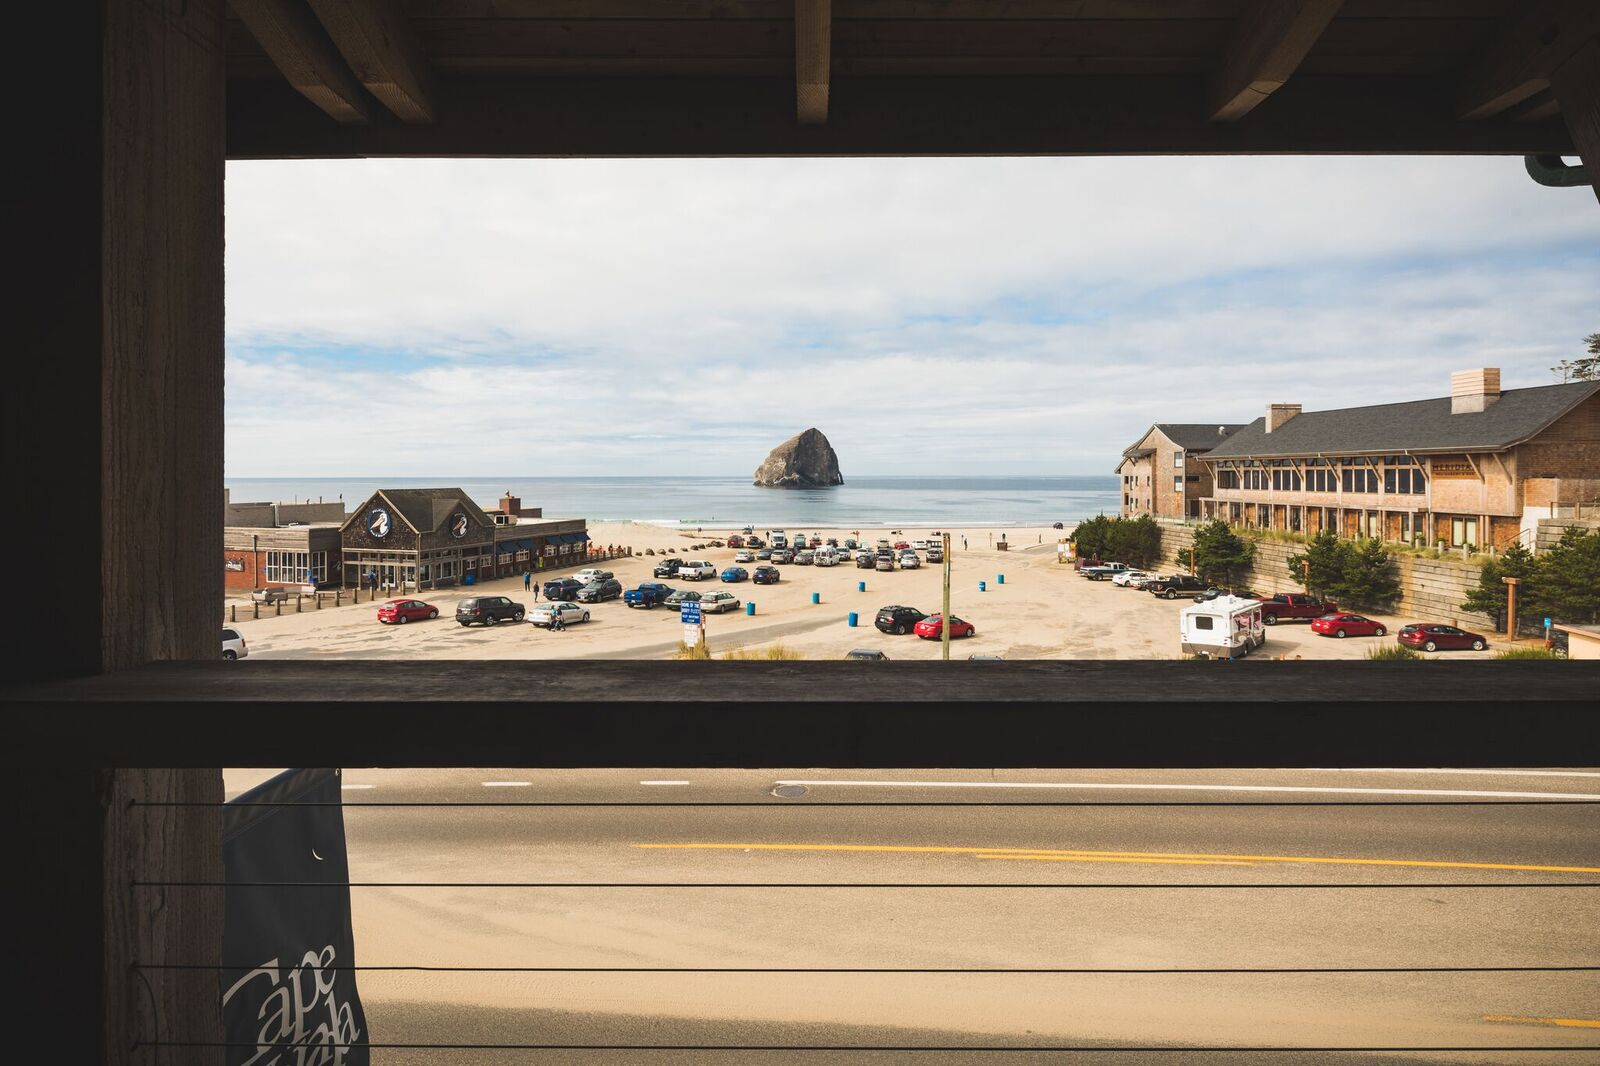 Inn at Cape Kiwanda 2018